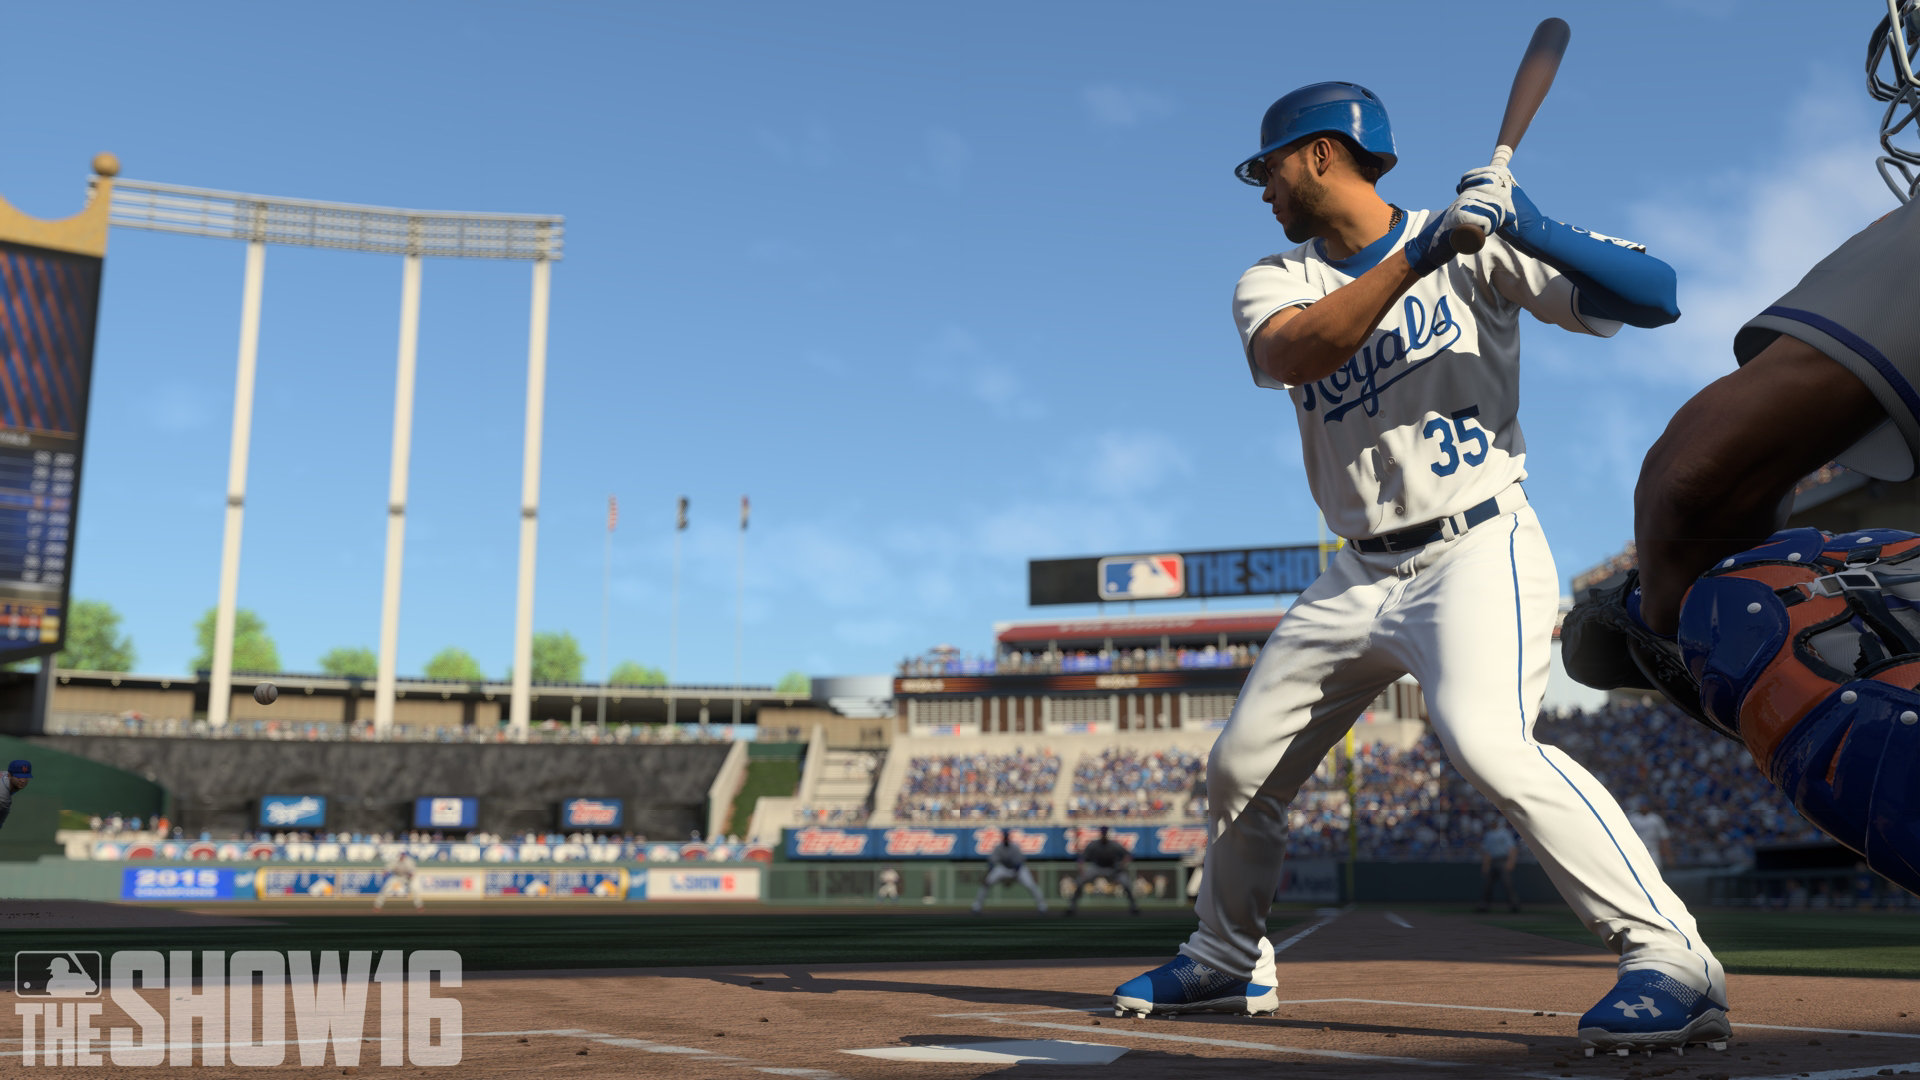 79dc2cc456a MLB The Show 16 continues the franchise s reign as the most authentic  sports game ever created. This year